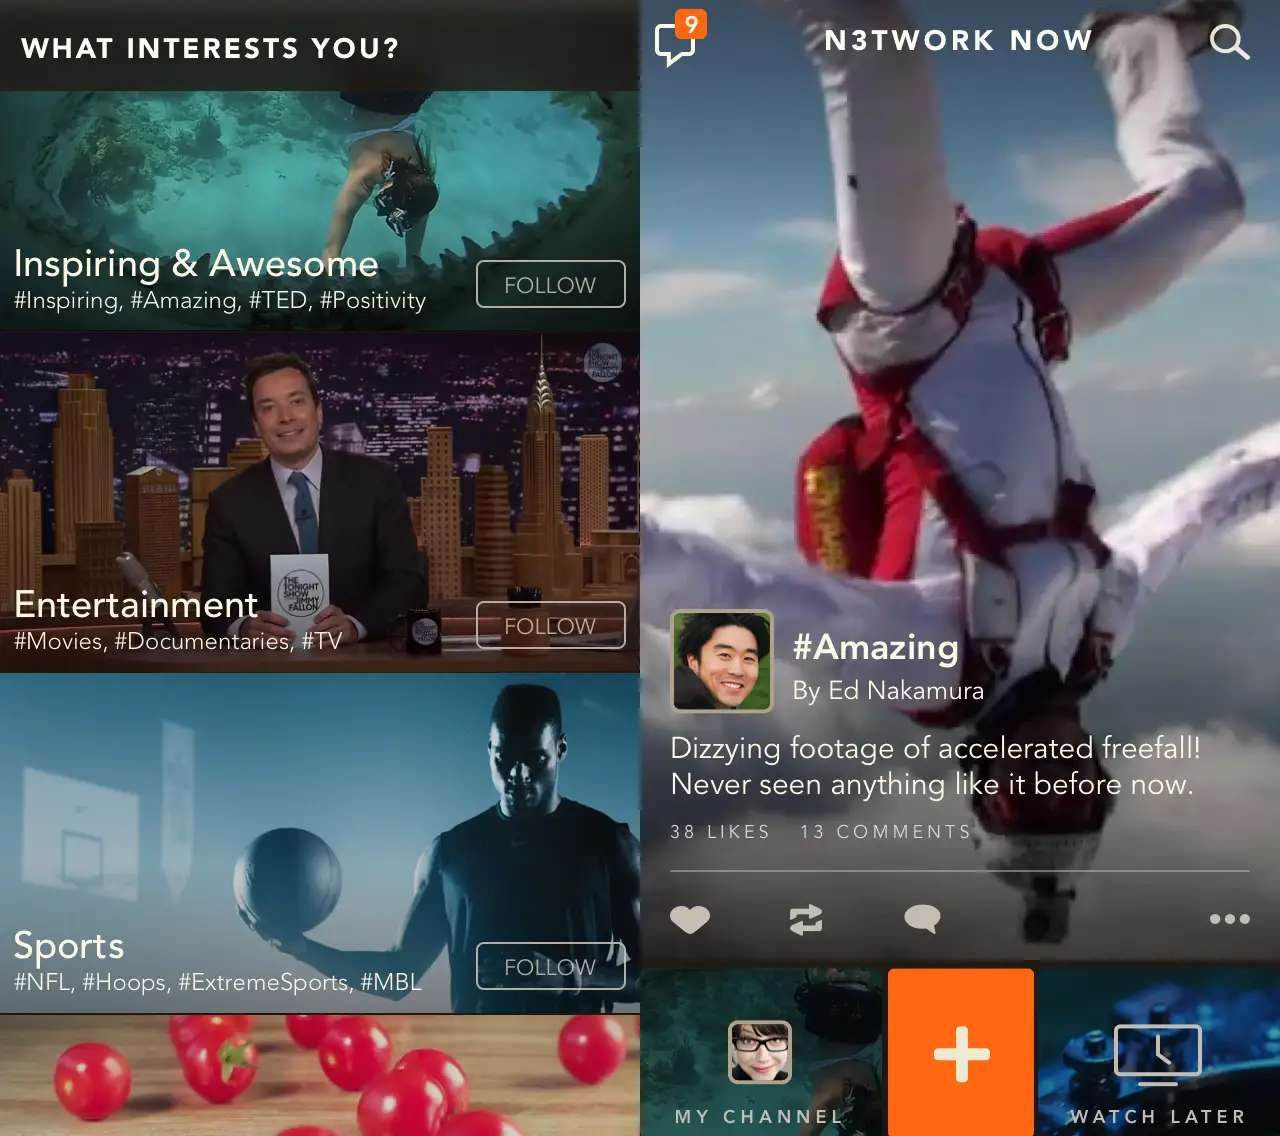 Network TV is a new way to browse and find internet videos.